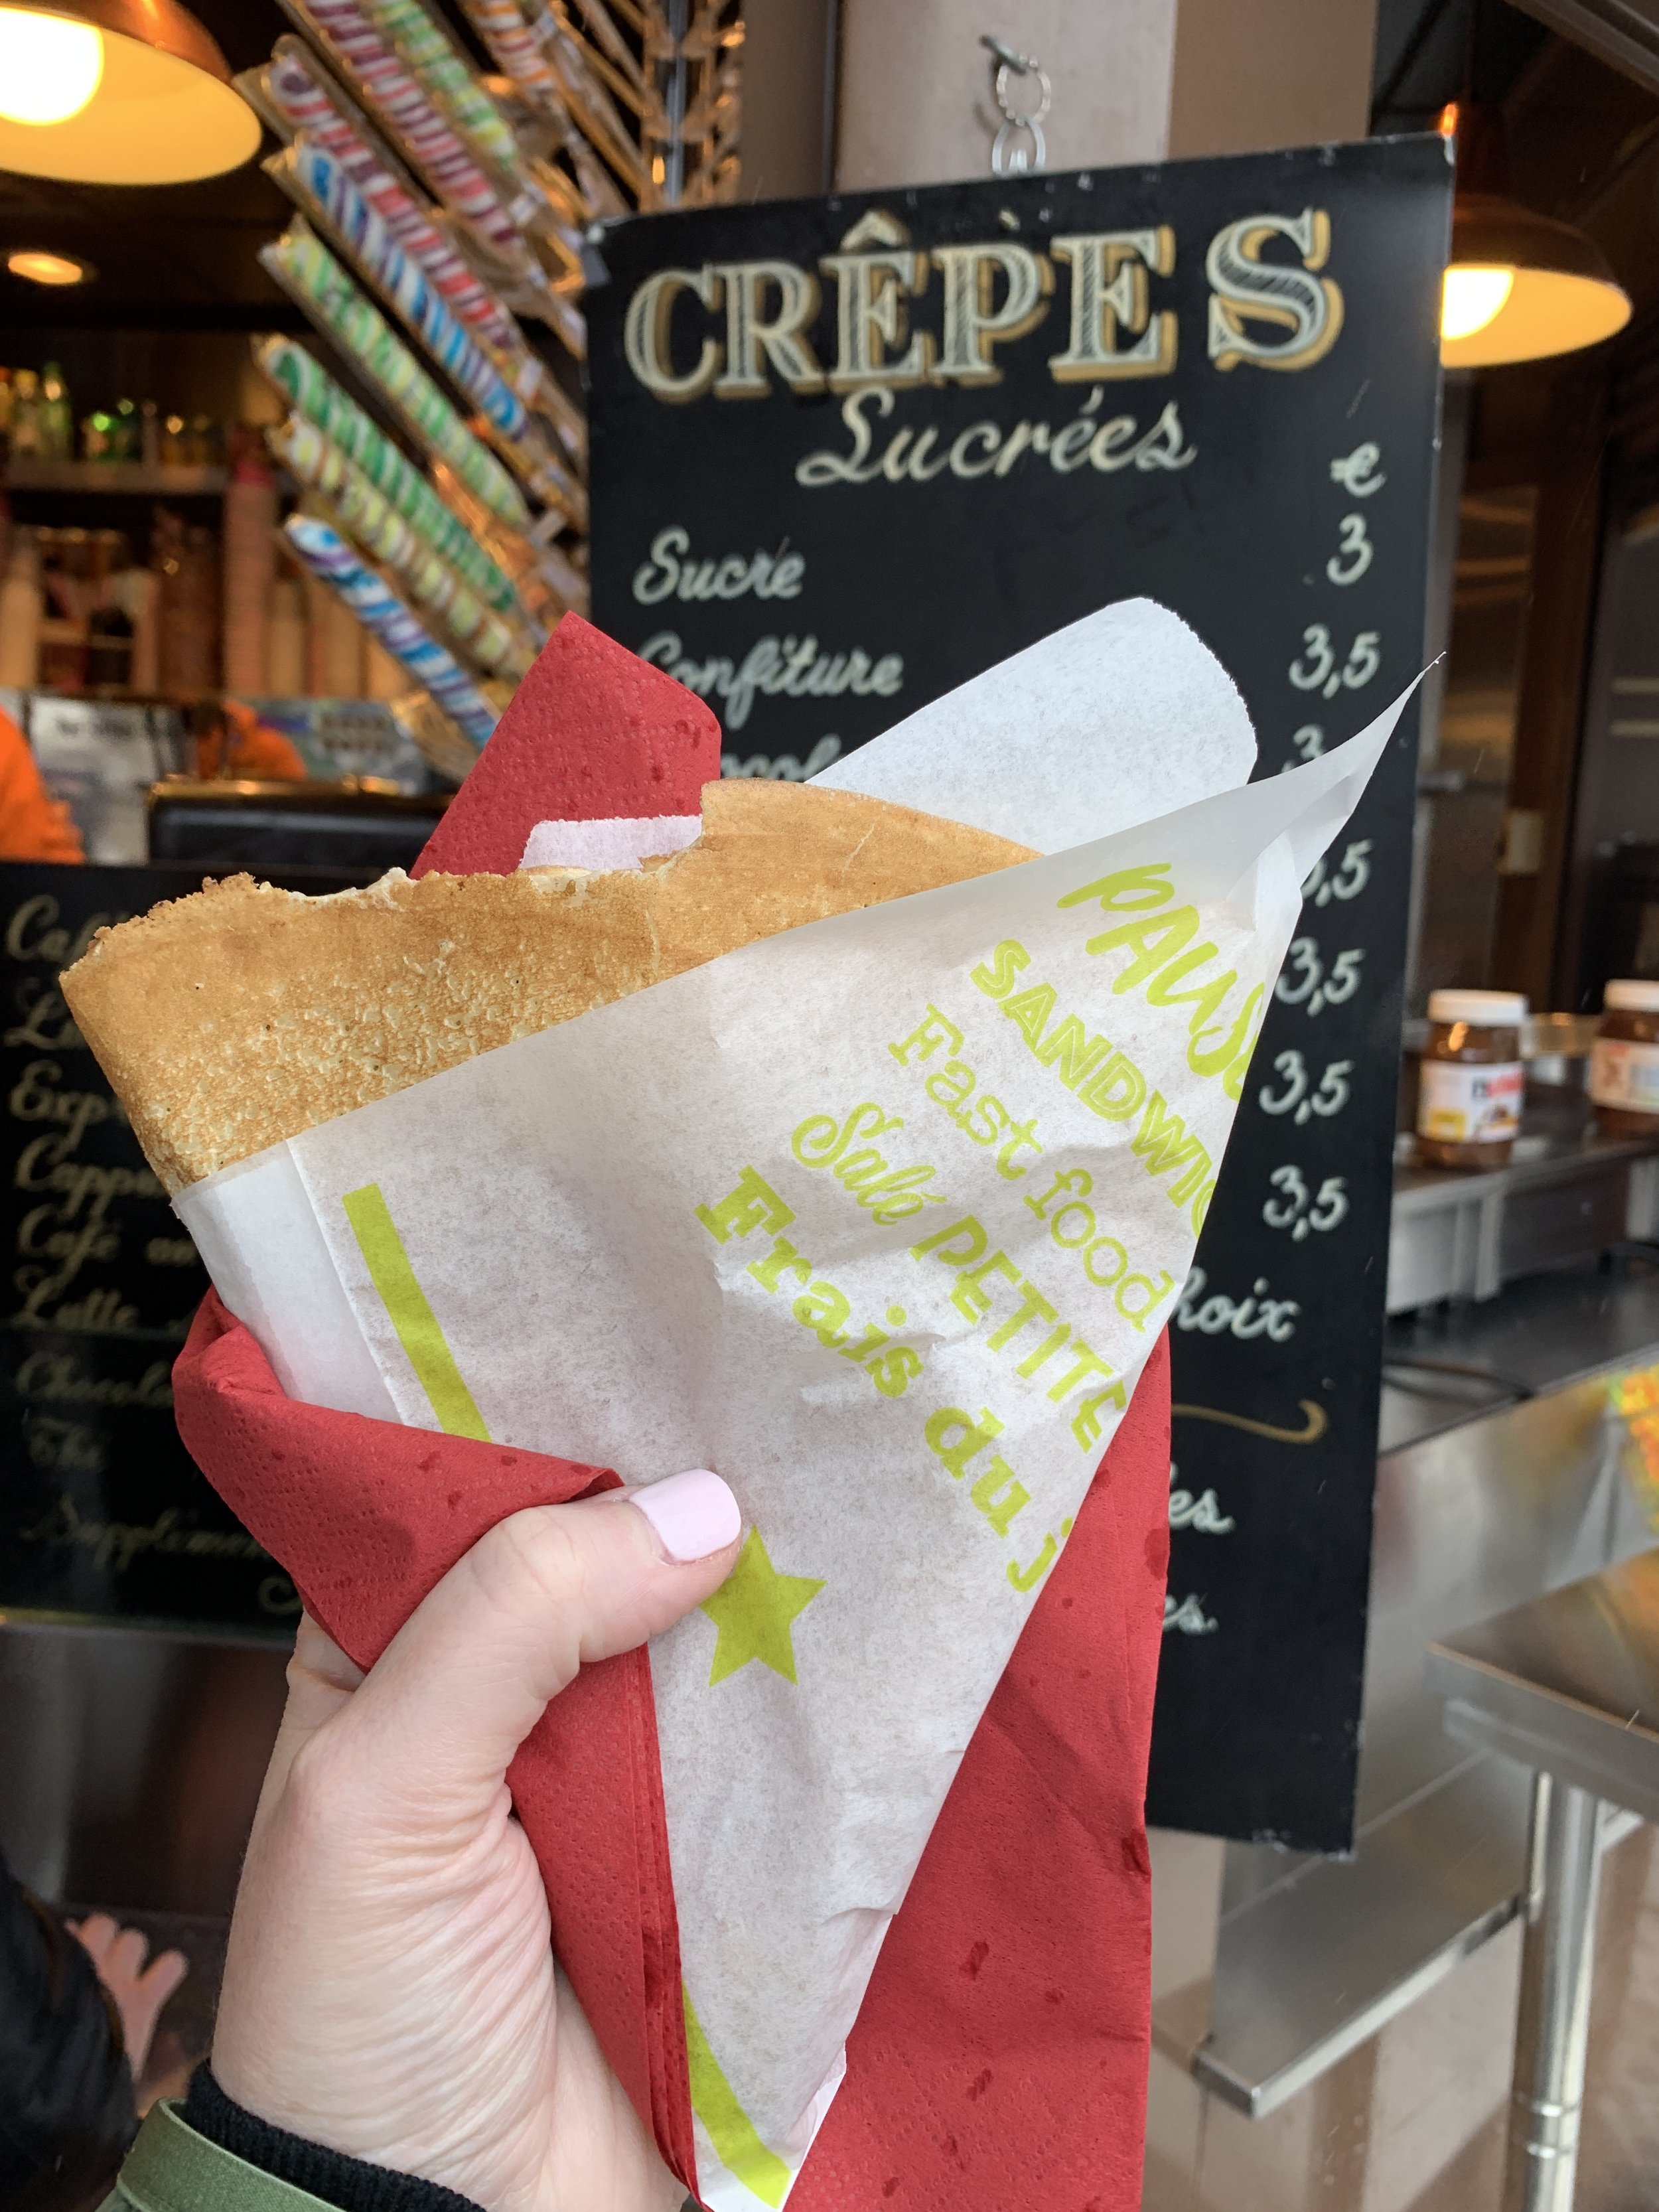 We enjoyed a crepe from a vendor down below.